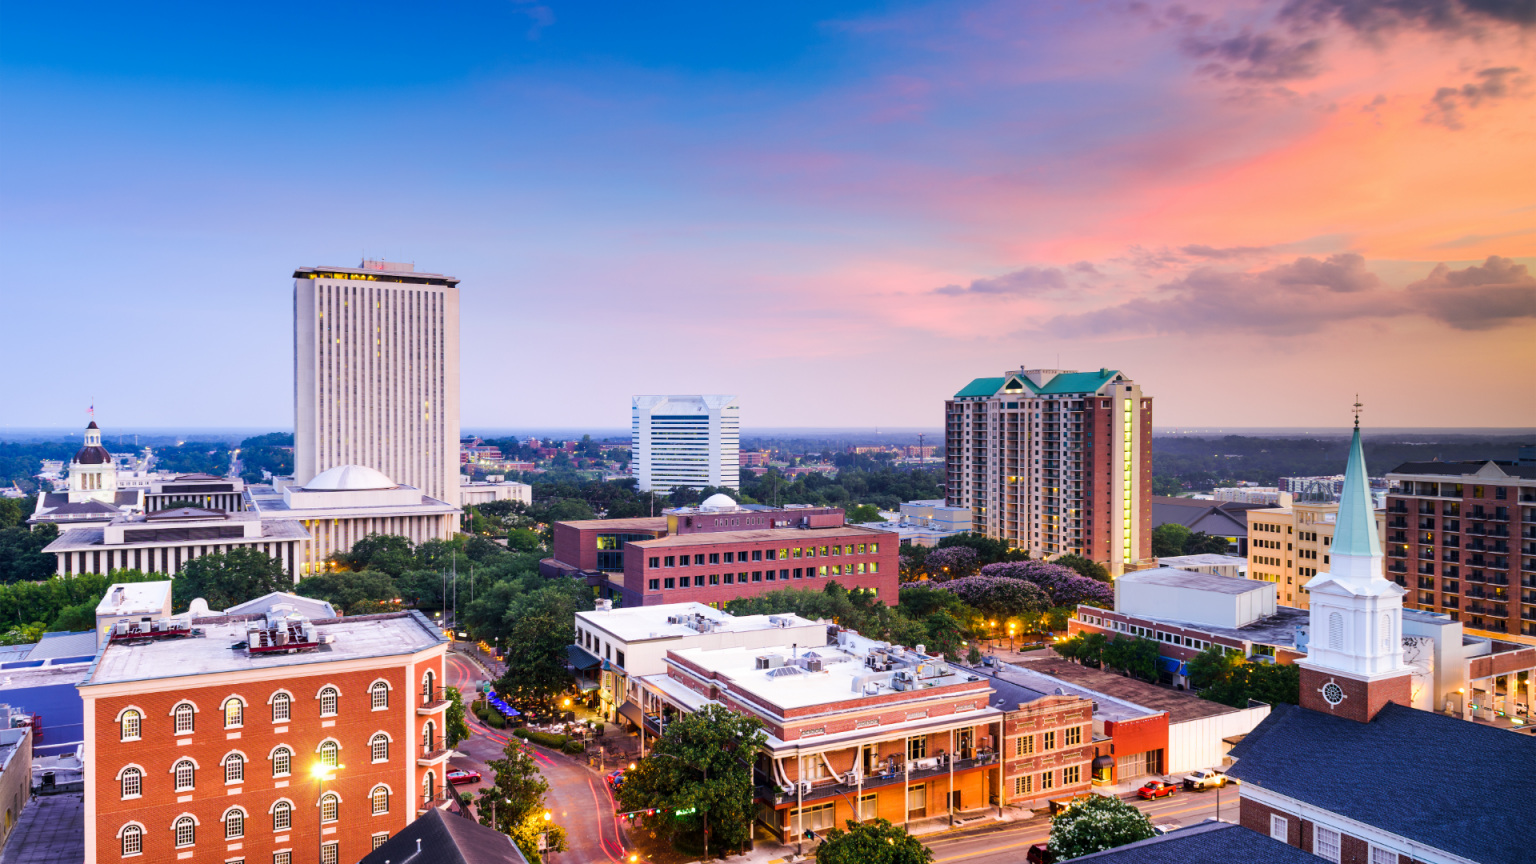 Why Tallahassee – Leon County?